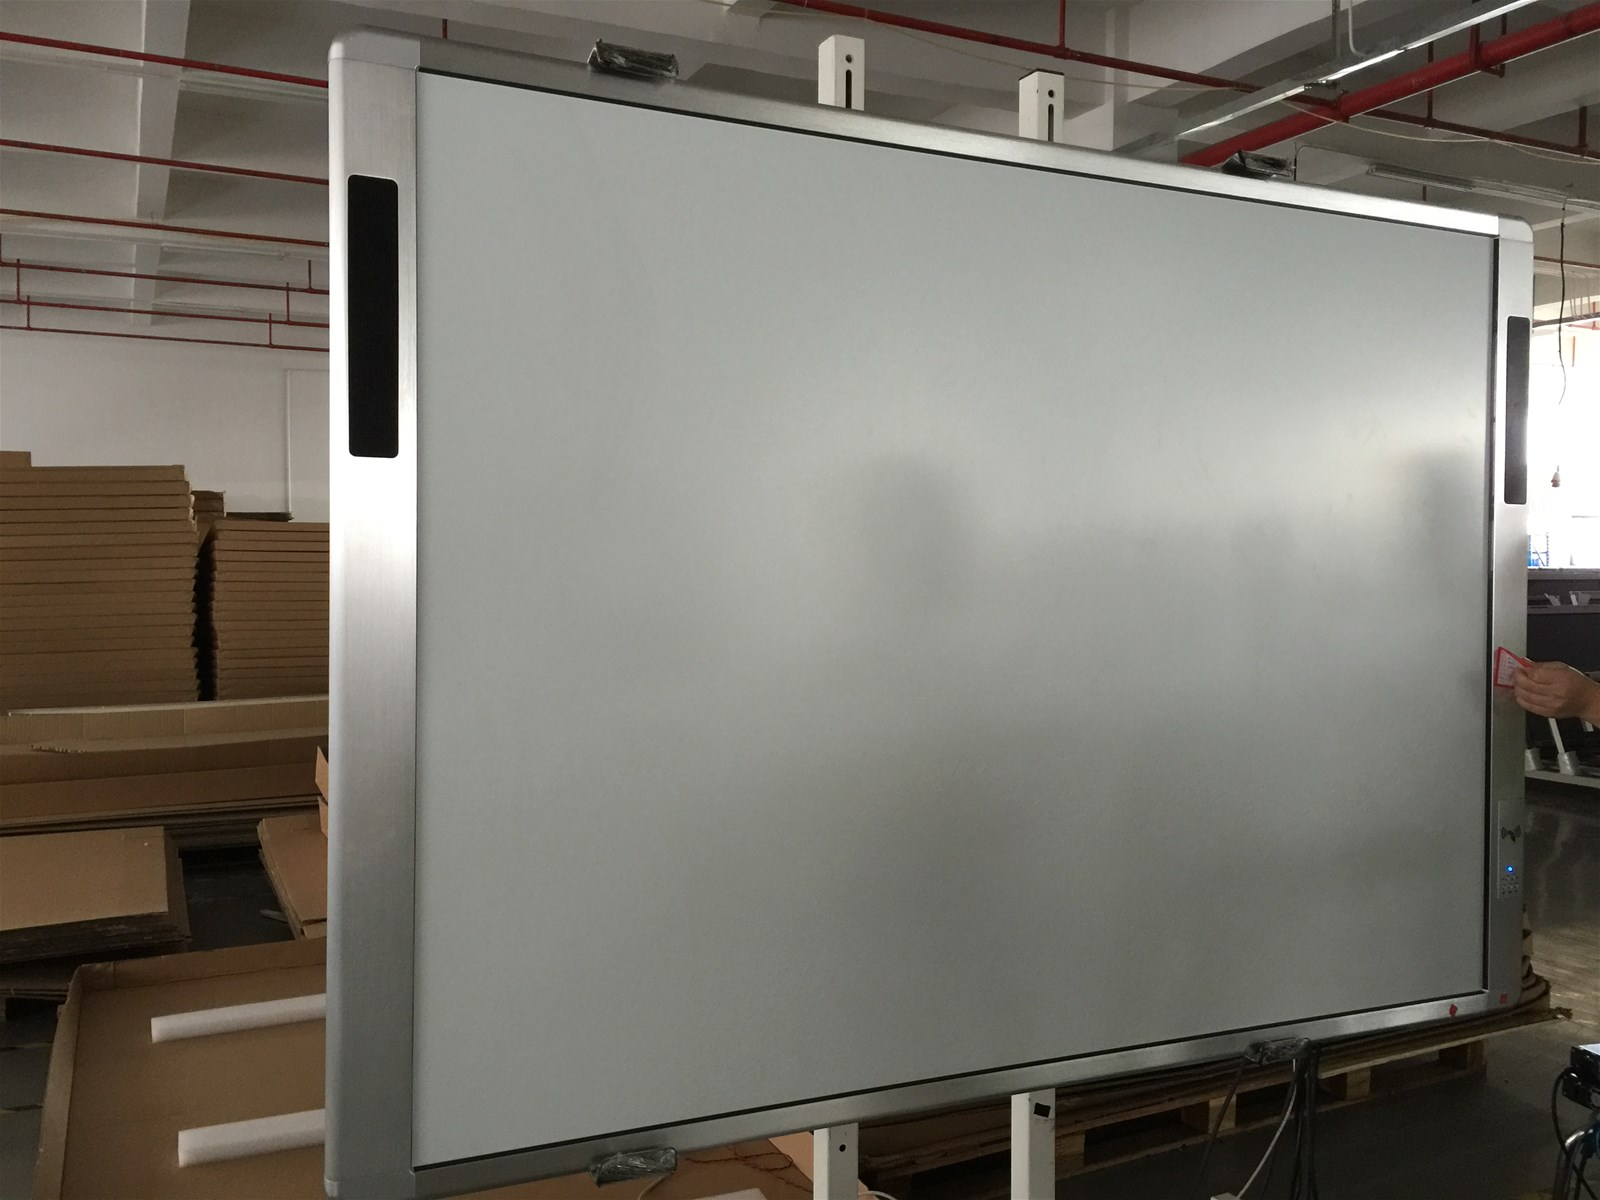 Allinone interactive whiteboard